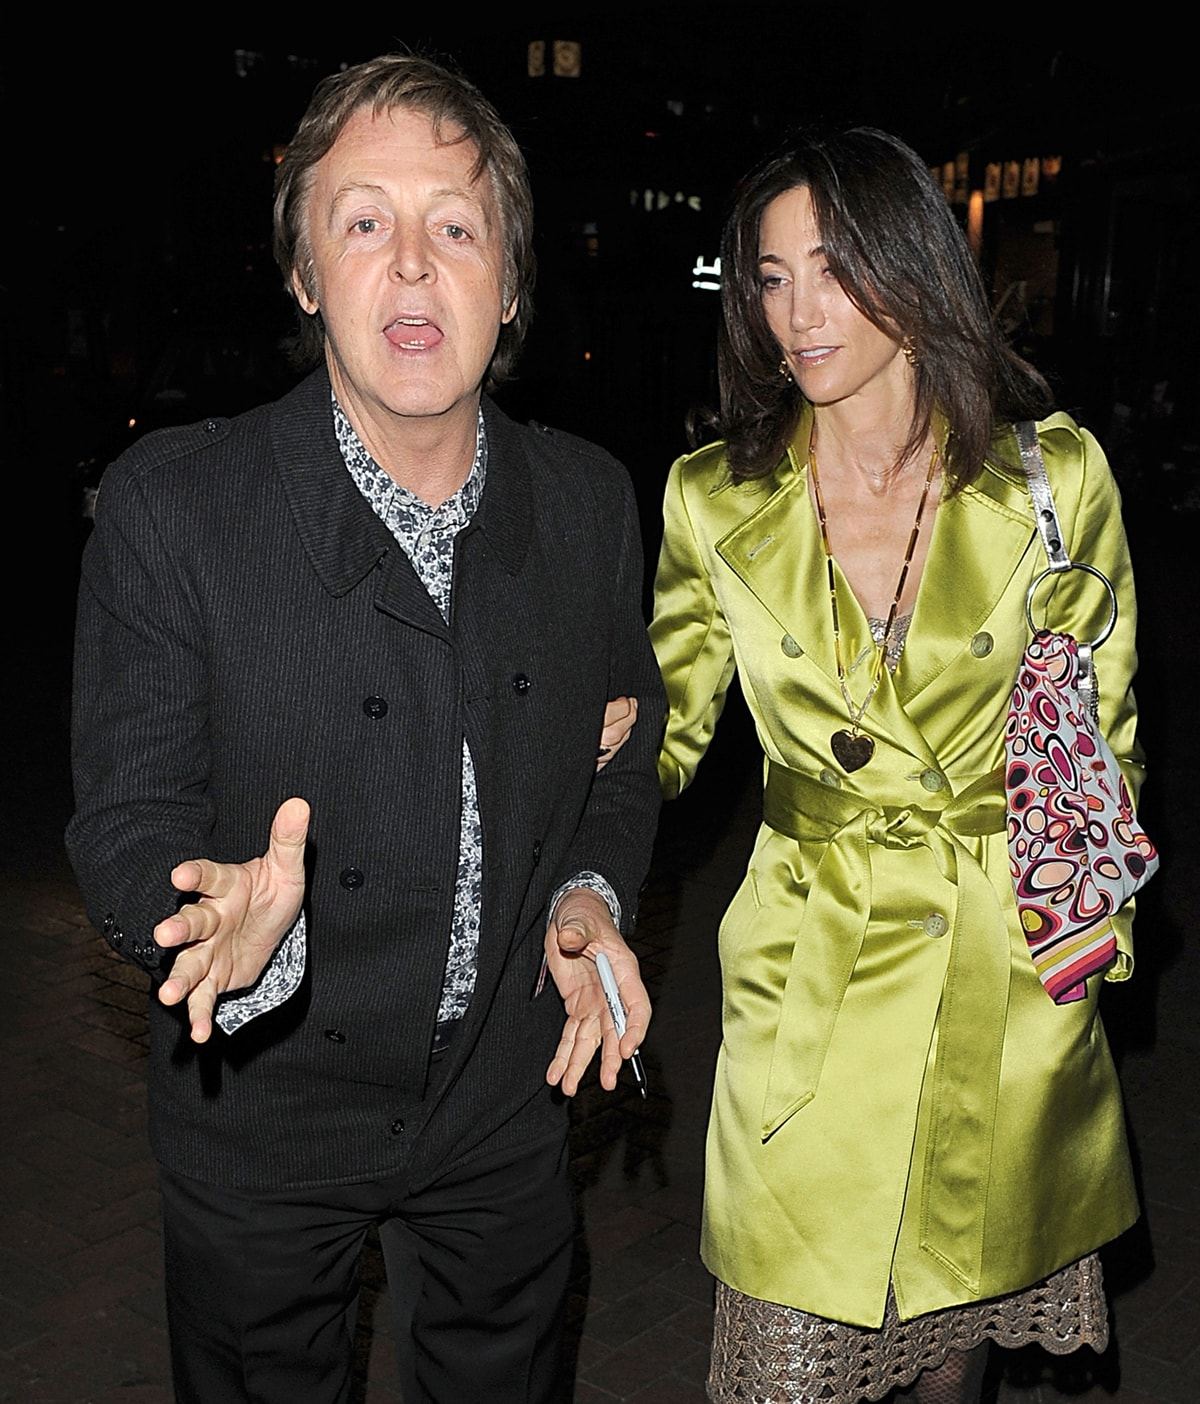 Sir Paul McCartney and Nancy Shevell met through Barbara Walters, who is Nancy's cousin-once-removed